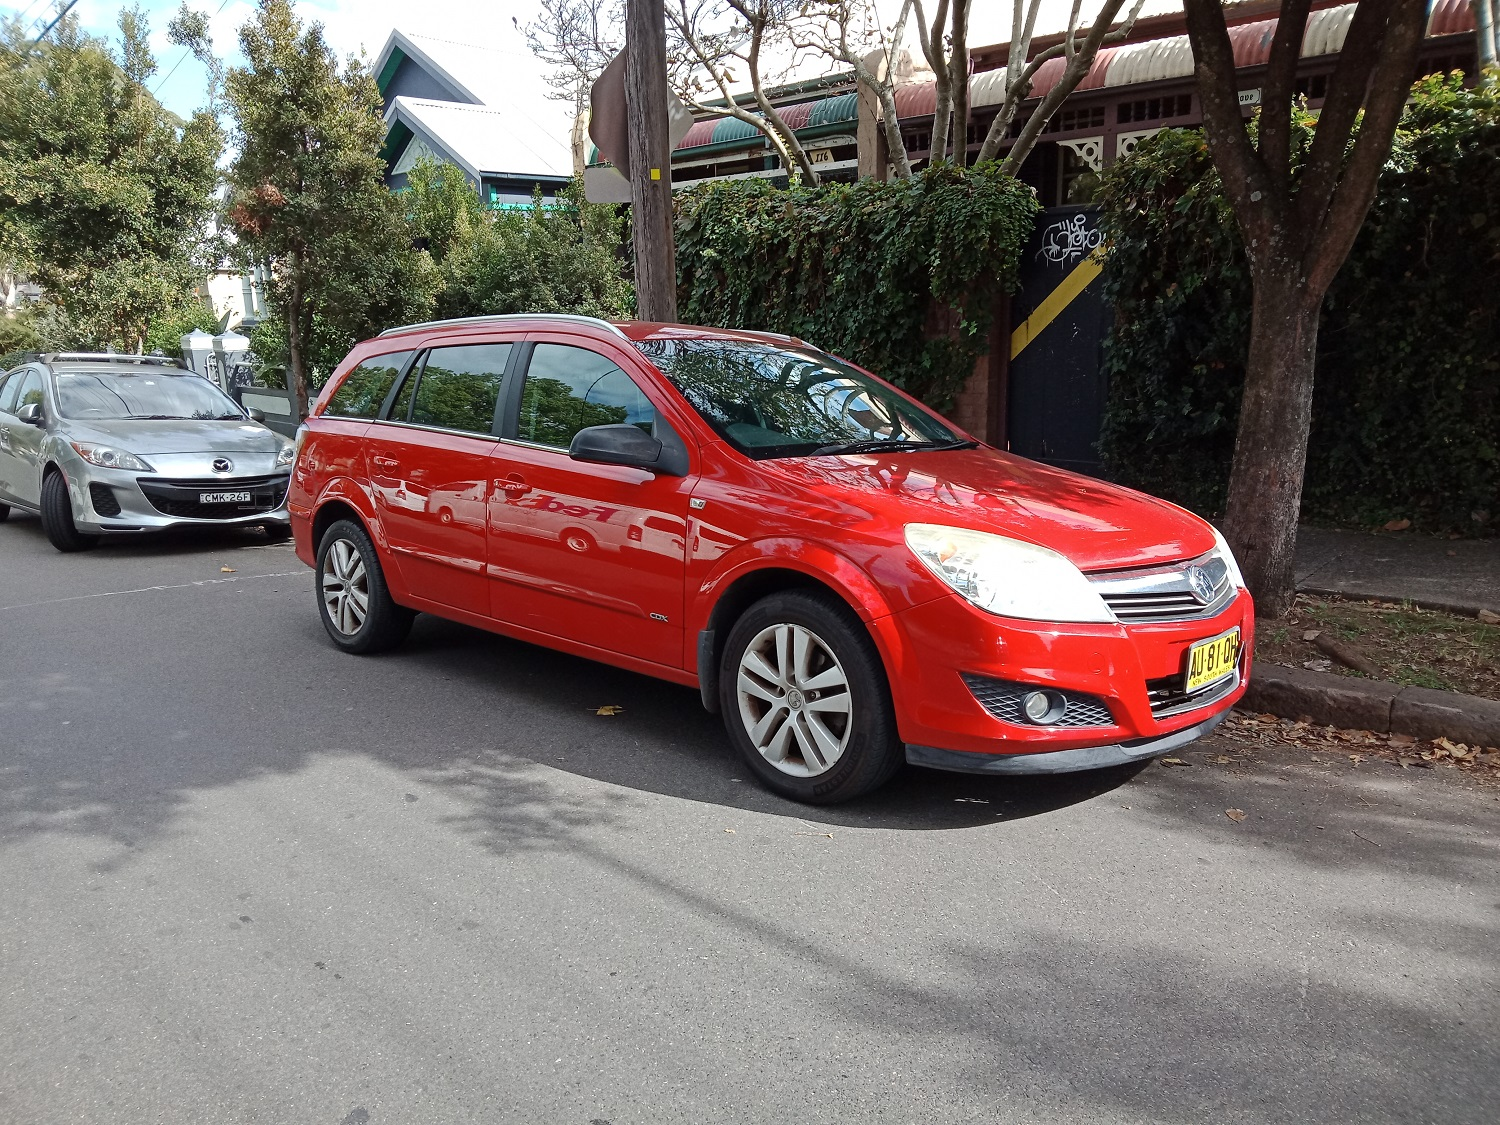 Picture of Maximillian's 2008 Holden Astra wagon